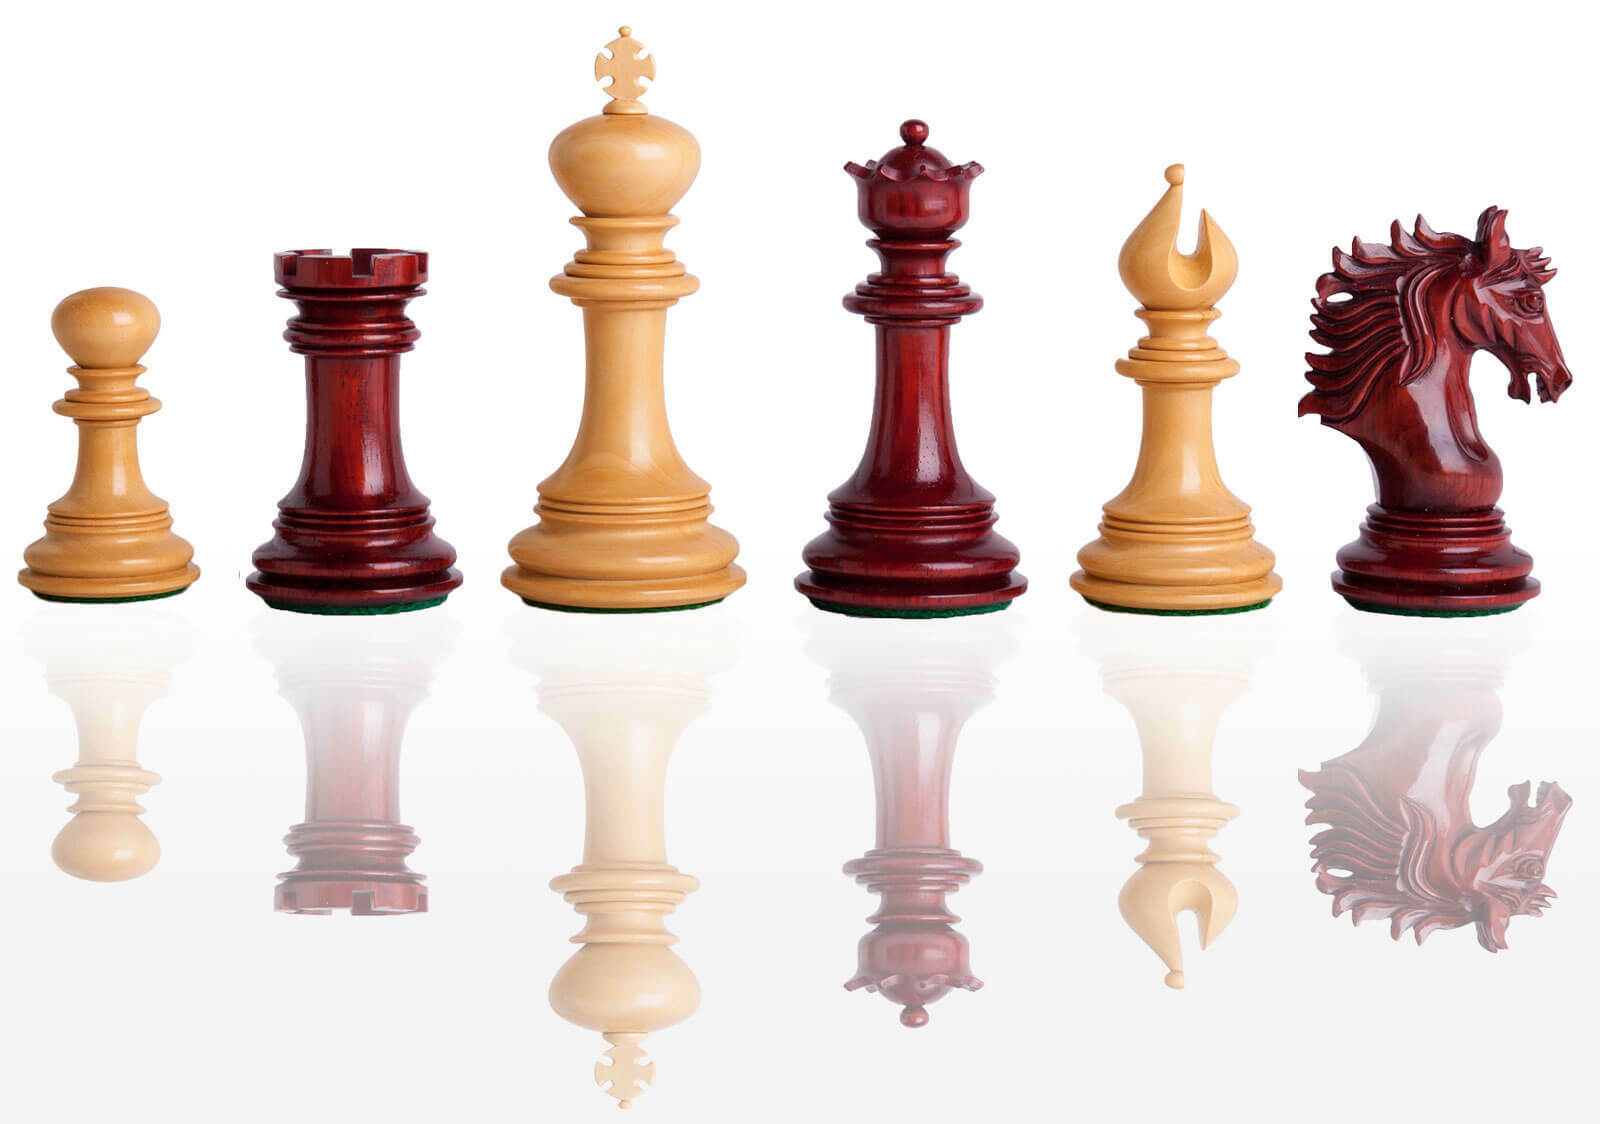 USCF Sales The Bolzano Luxury Chess Set - Pieces Pieces Pieces Only - 4.4  King - Blood pinkwo 060cdc